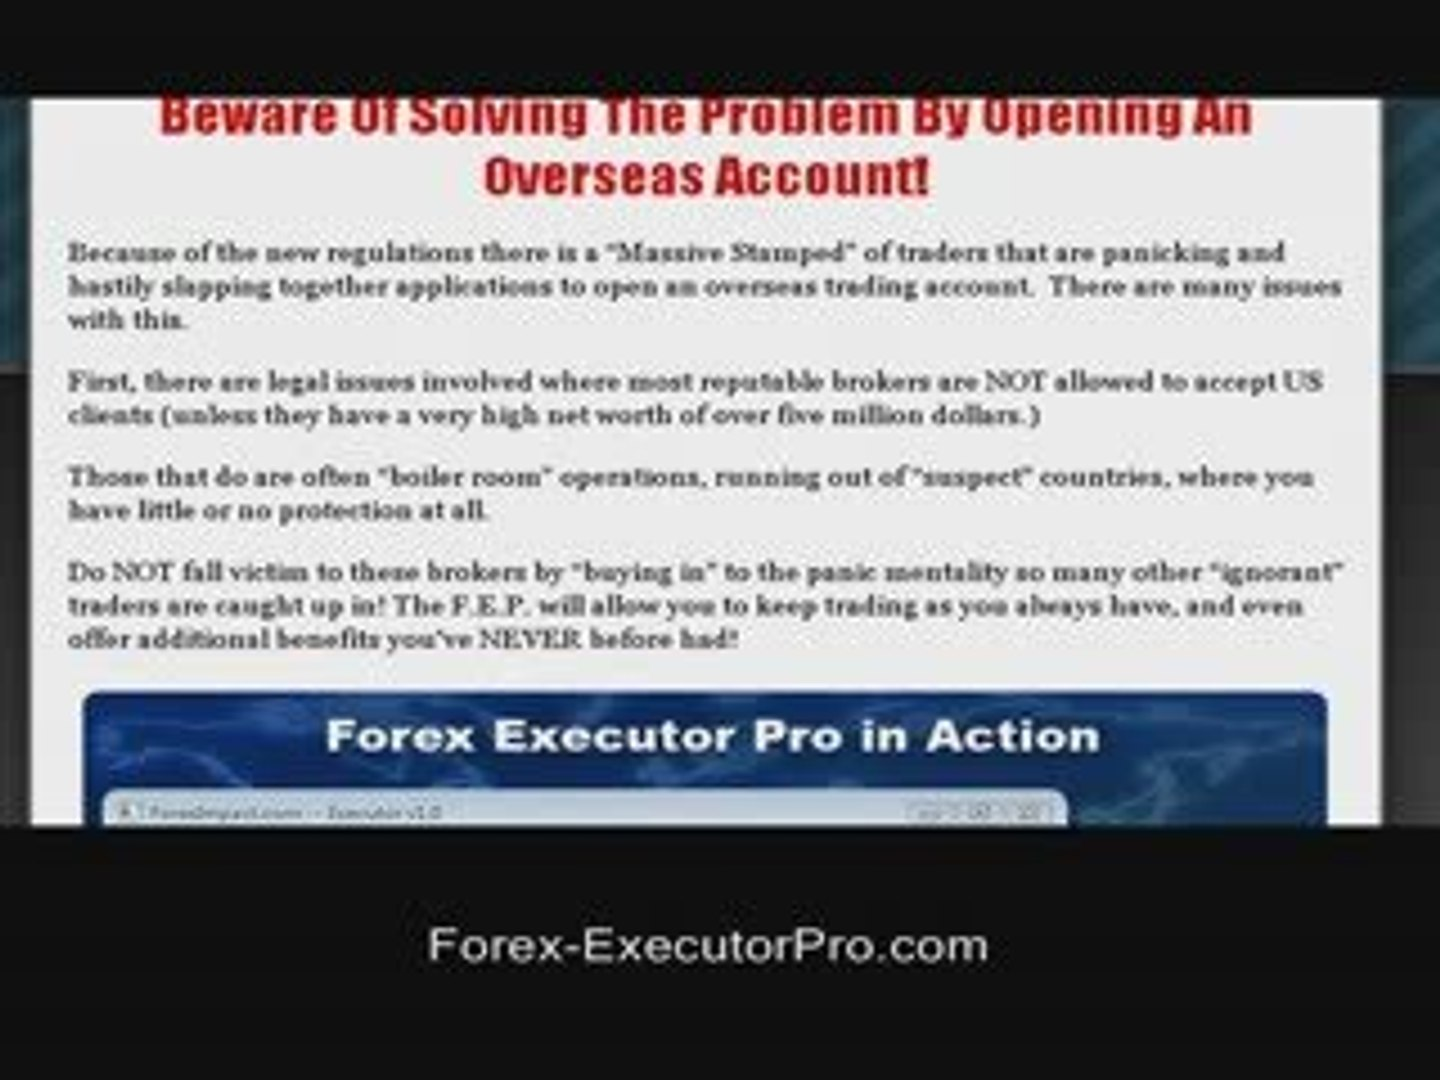 Forex executor pro share huang nubo zhongkun investment group